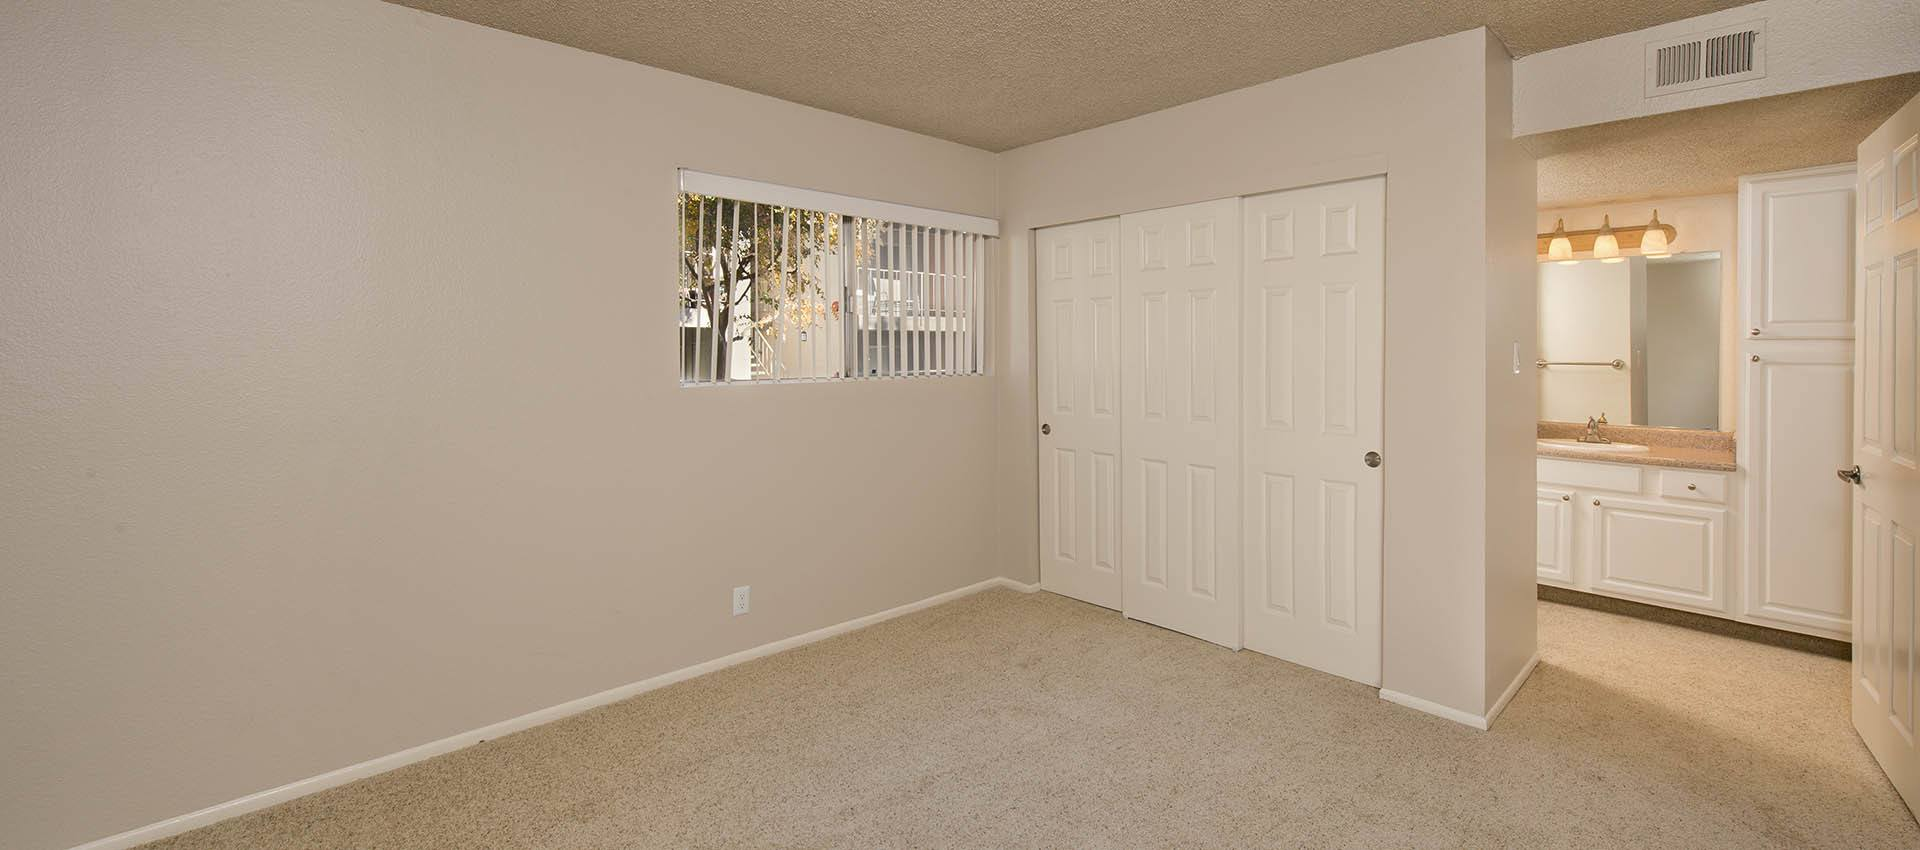 Living Room With Closet at La Valencia Apartment Homes in Campbell, California